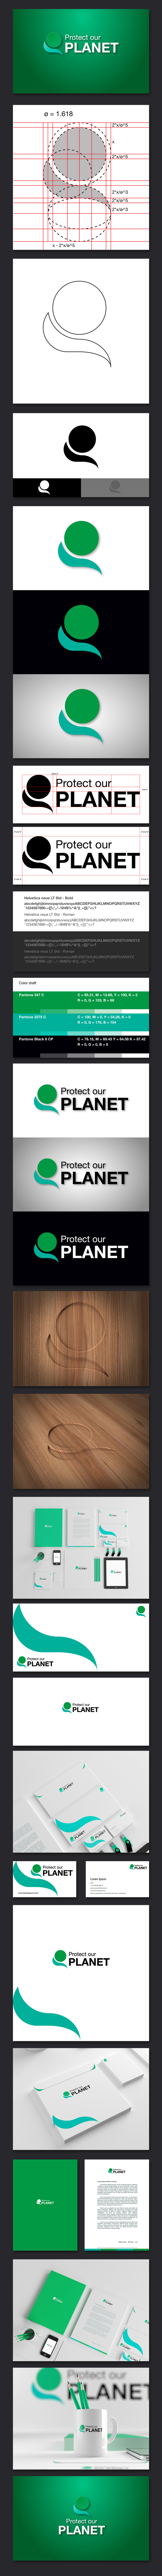 Protect our planet by SDMD